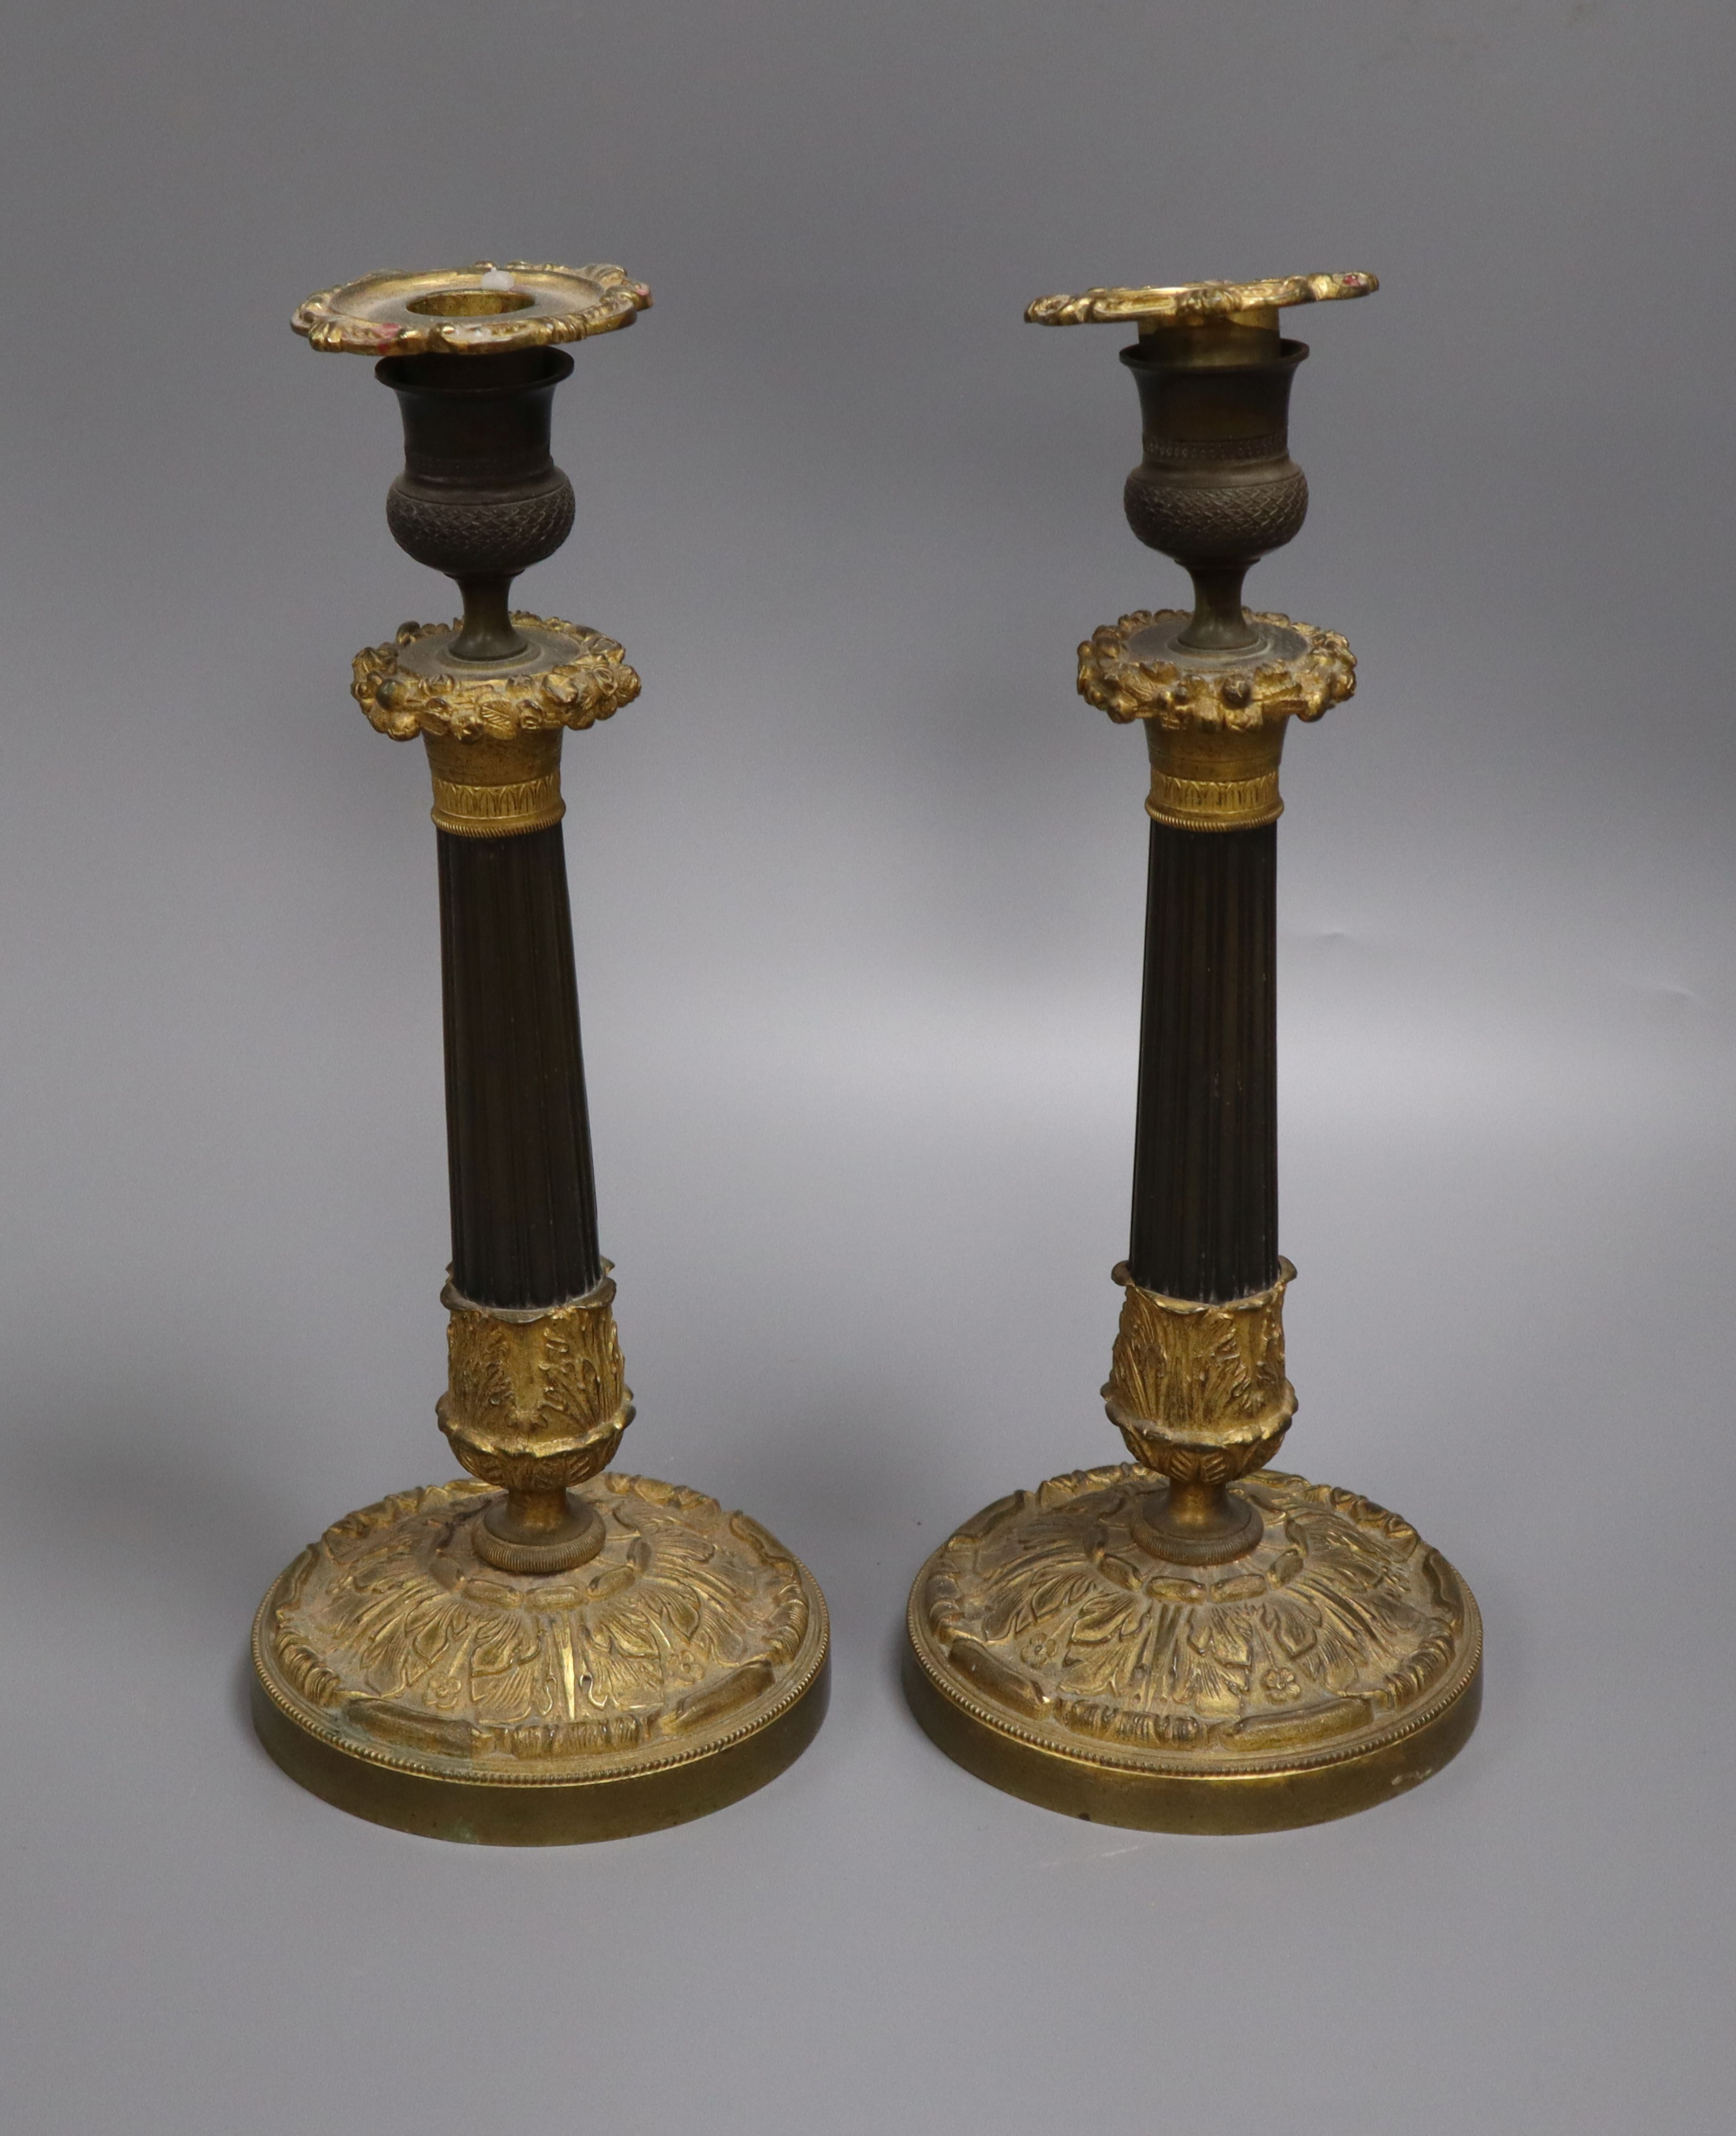 Lot 32 - A pair of William IV bronze and ormolu candlesticks height 30cm